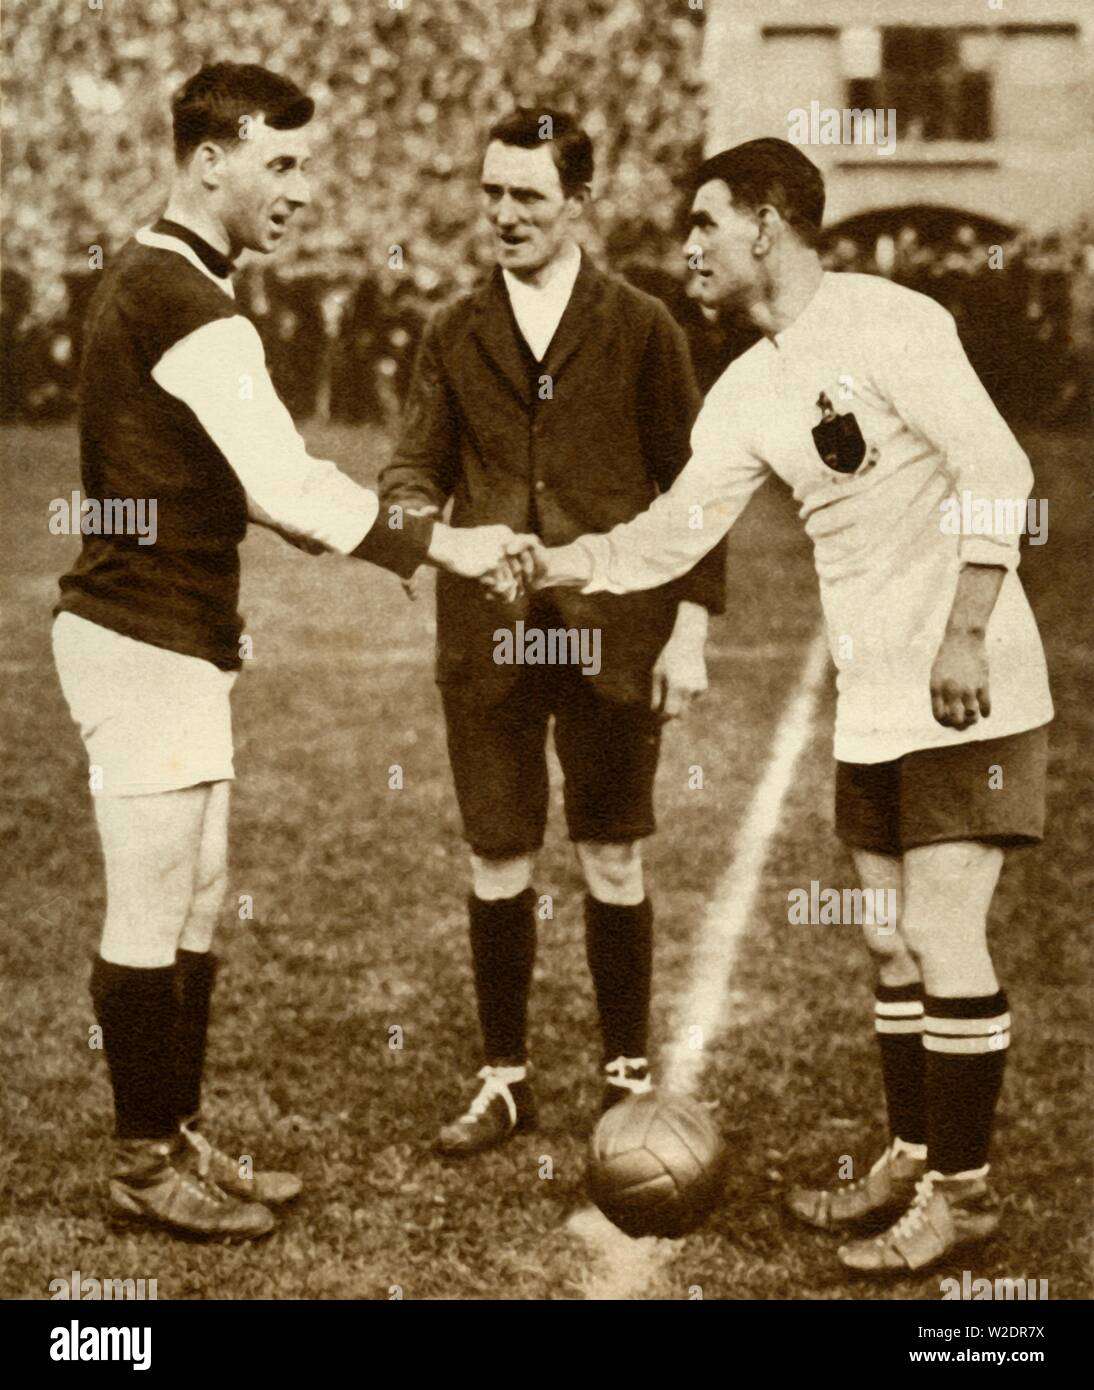 """George Kay and Joe Smith shake hands before kick-off, FA Cup Final, Wembley Stadium, London, 28 April 1923, (1935). George Kay (1891-1954), captain of West Ham United, shaking hands with Joe Smith (1889-1971), the Bolton Wanderers' captain, as the first FA (Football Association Challenge Cup) Final is held at the new Wembley Stadium. Bolton Wanderers beat West Ham 2-0. From """"The Silver Jubilee Book - The Story of 25 Eventful Years in Pictures"""". [Odhams Press Ltd., London, 1935] - Stock Image"""